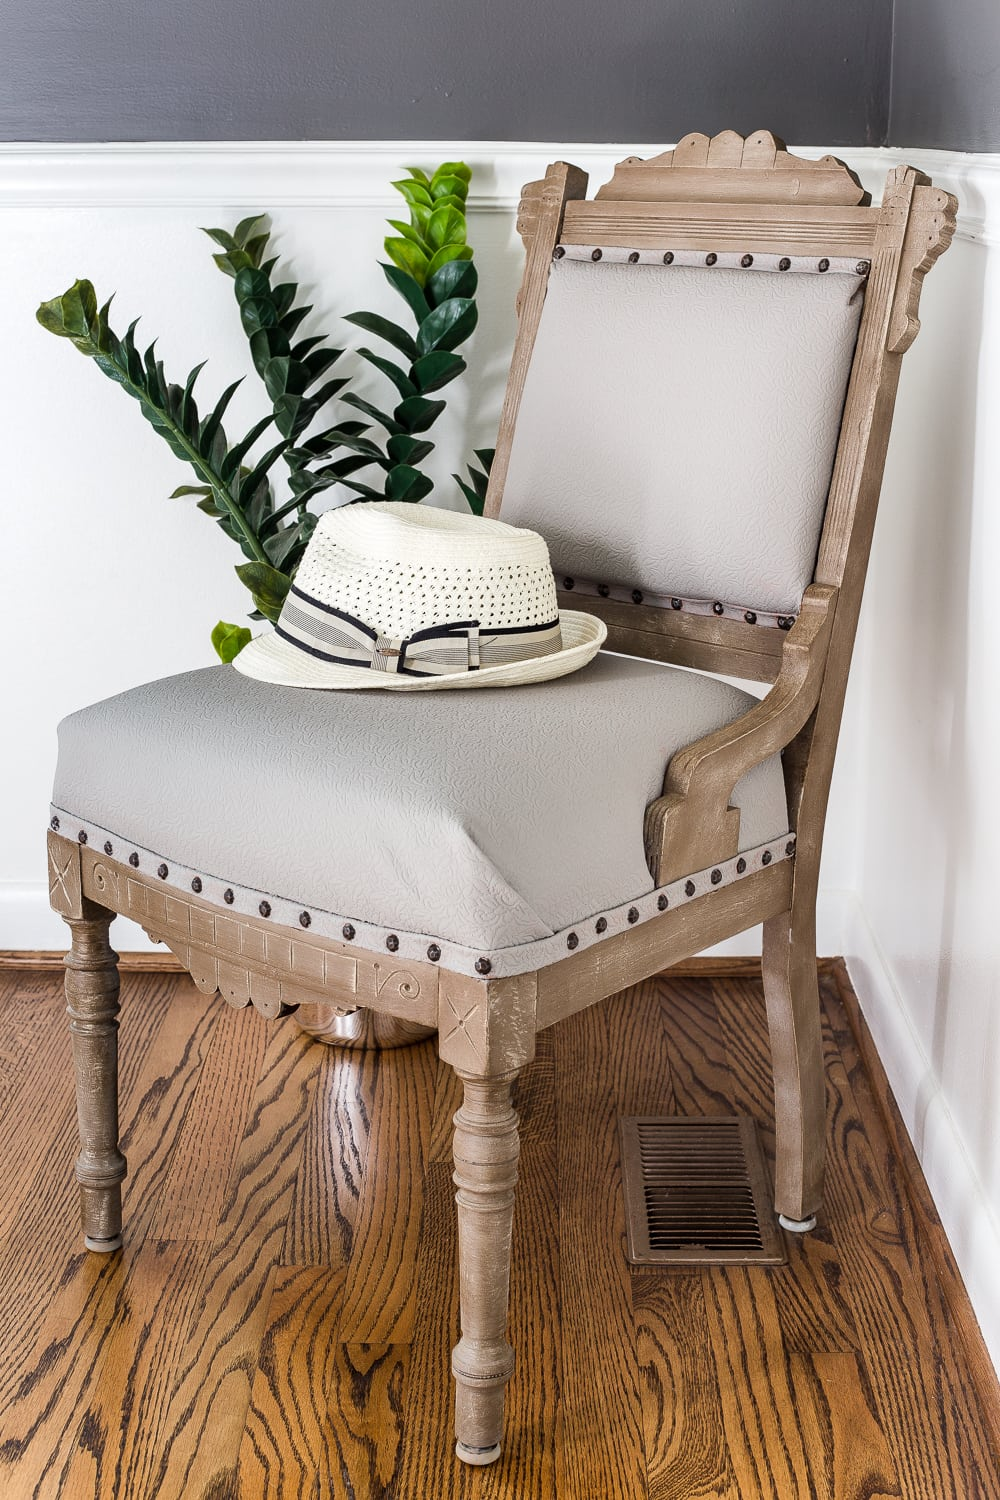 This gorgeous accent chair was a diy makeover that added a sleek modern farmhouse touch to the room